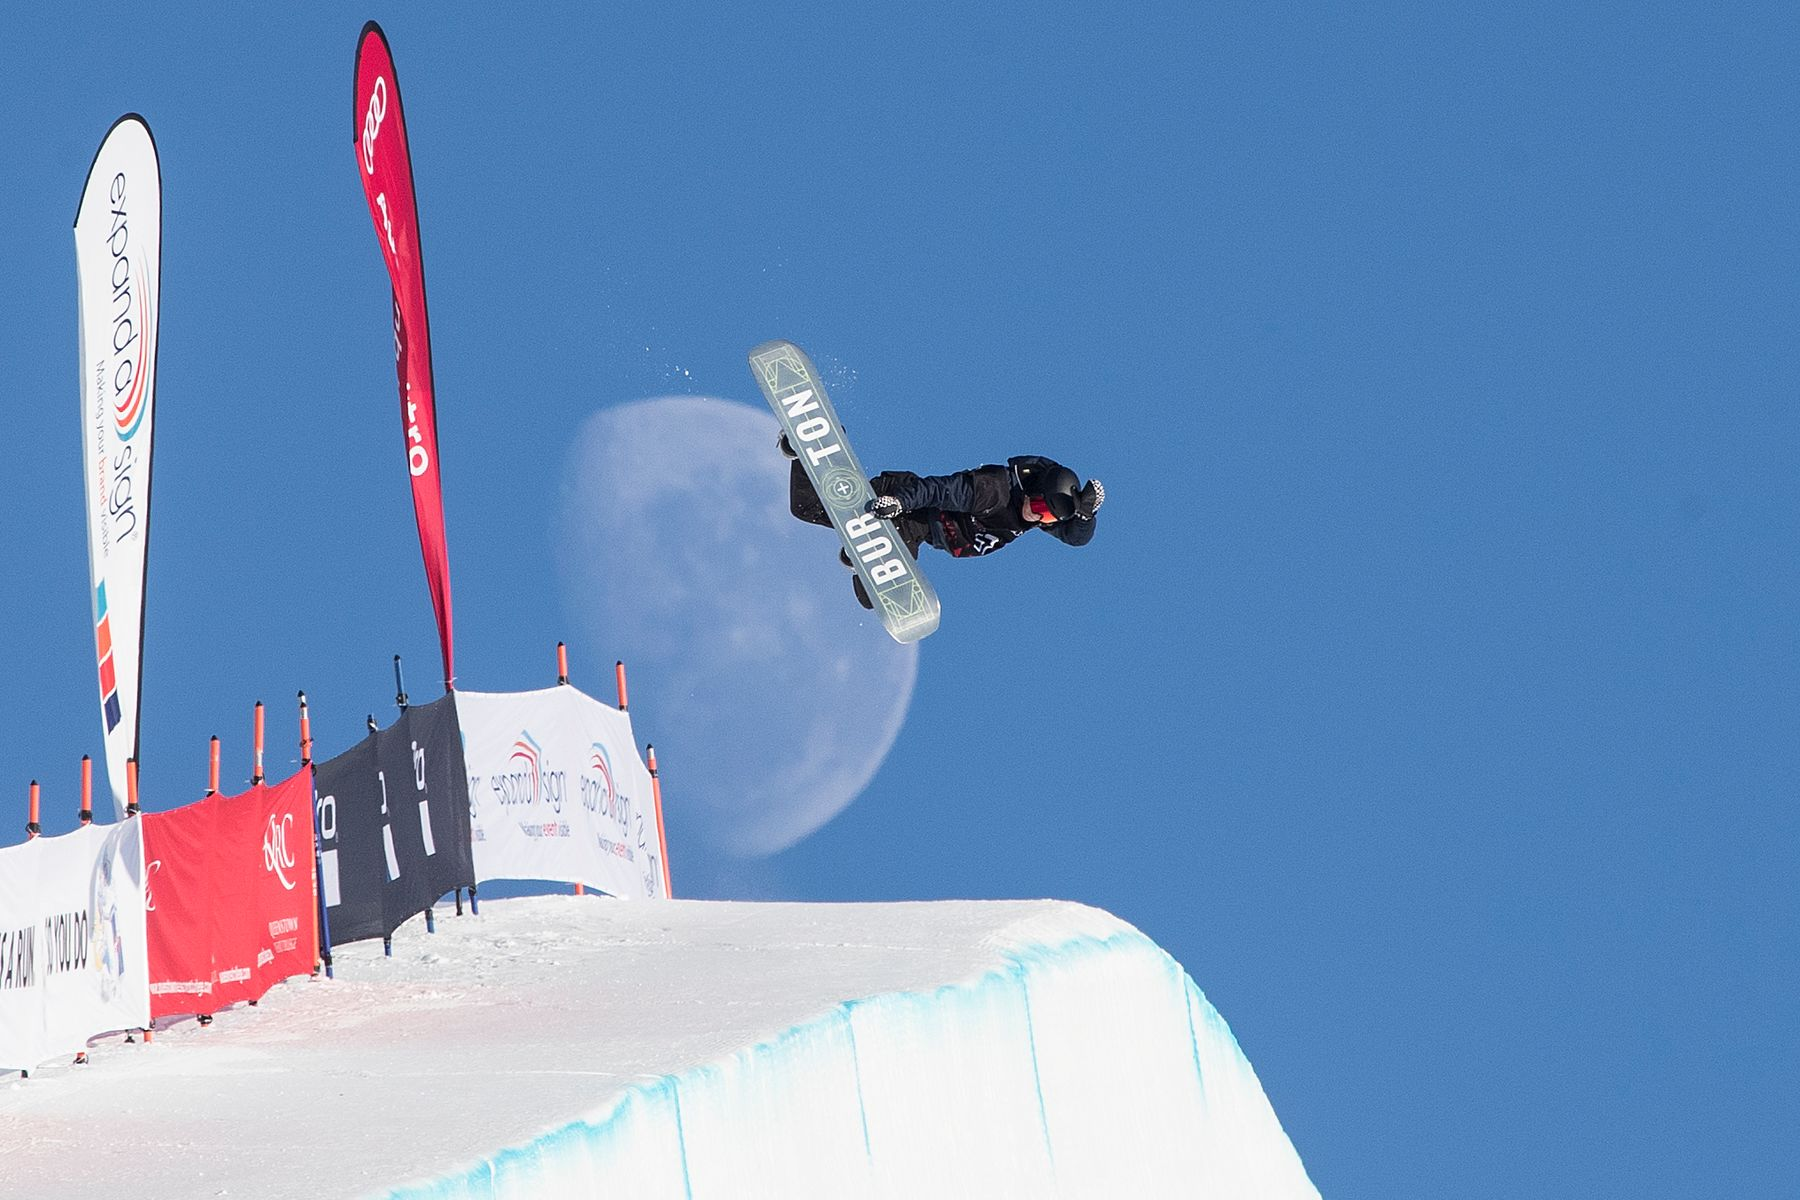 FIS Australia New Zealand Cup Freeski & Snowboard Halfpipe Qualifiers Postponed due to Weather